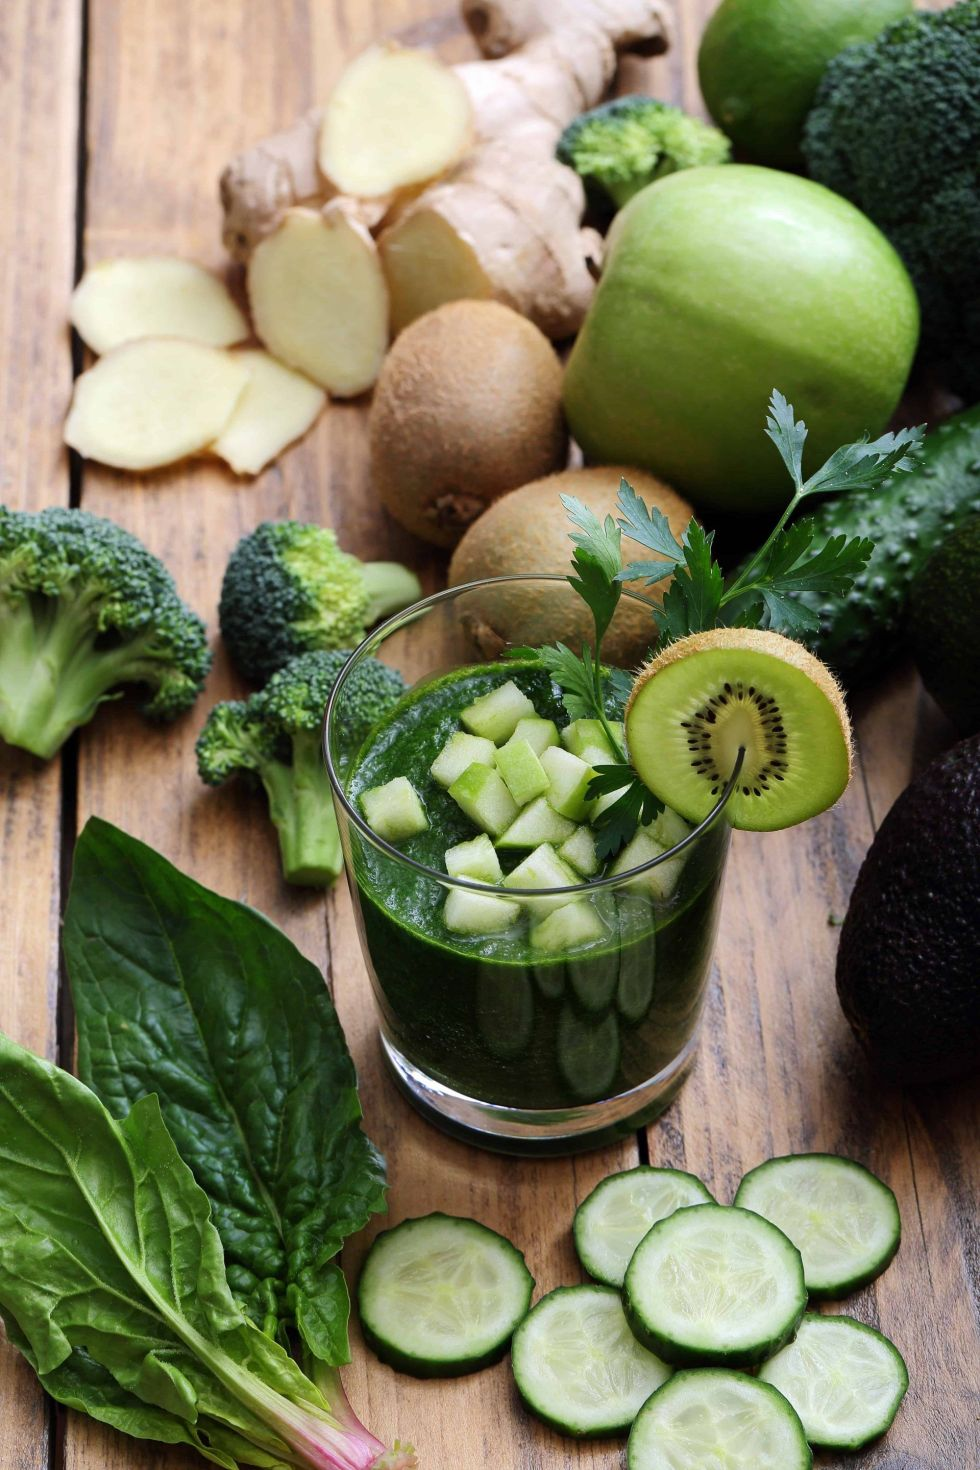 Green smoothie with chopped green vegetables